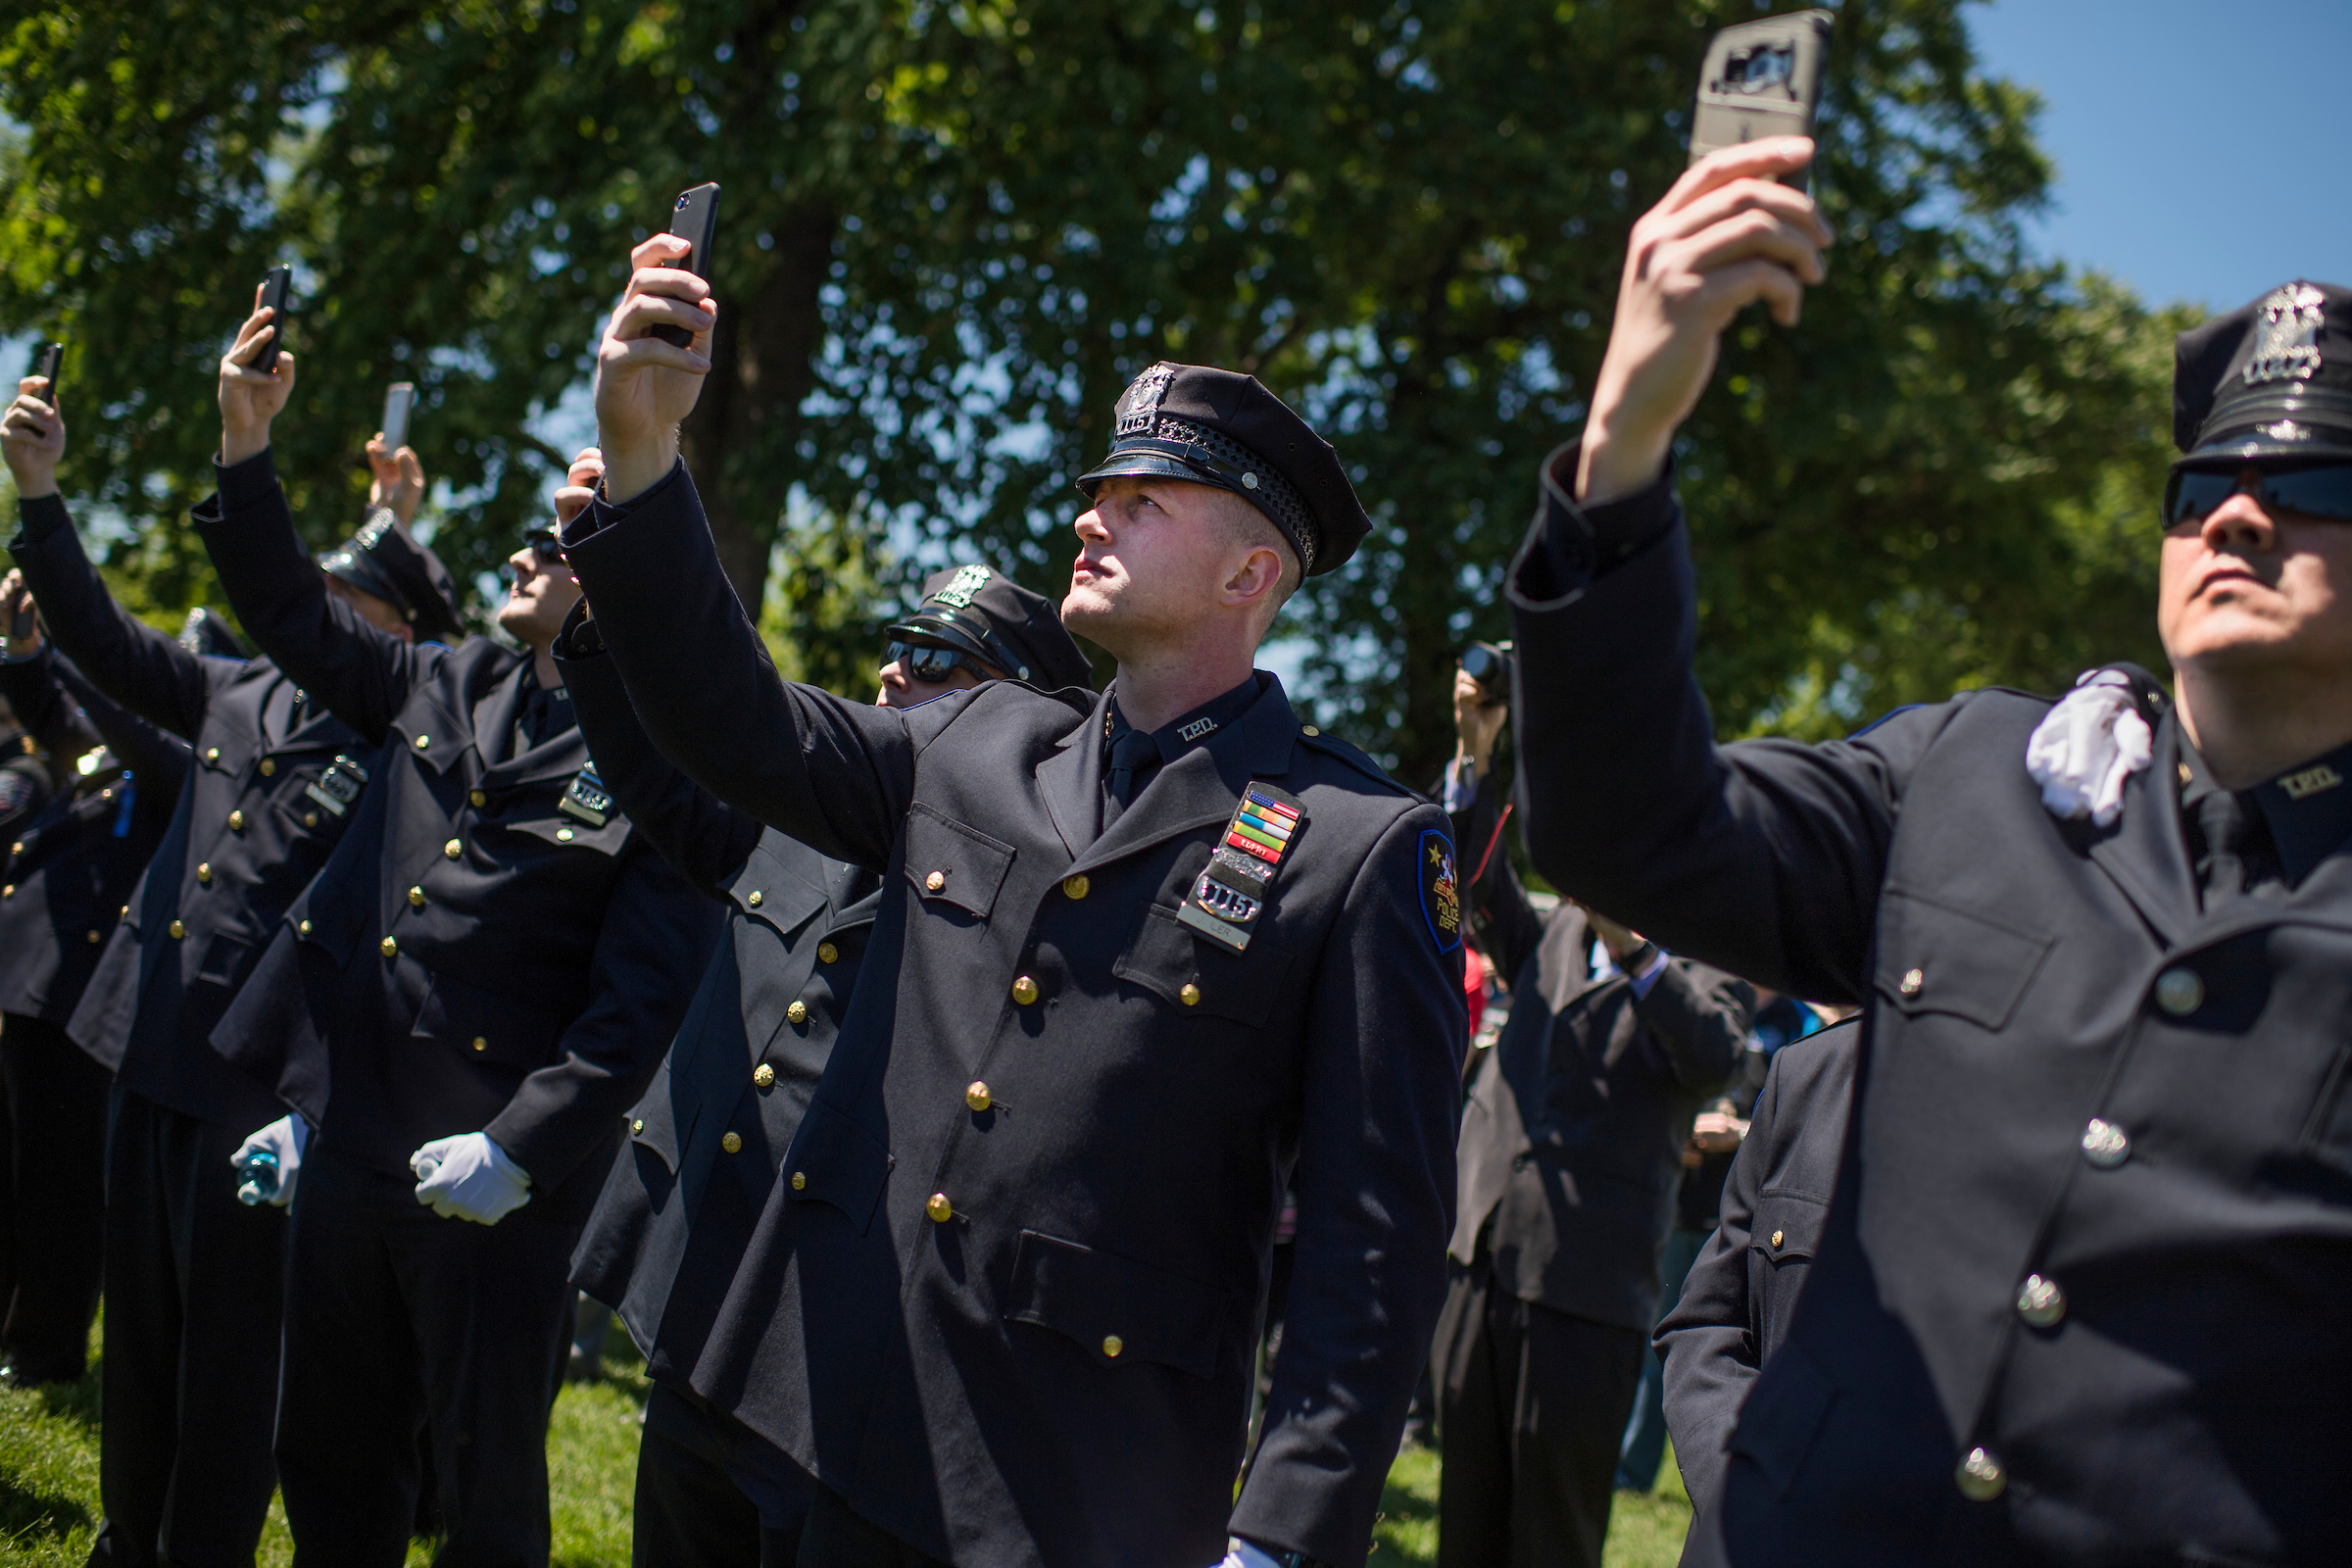 UNITED STATES - MAY 15: Off. Jarrod Iler of the Troy, N.Y., Police takes a picture of President Donald Trump addressing the 36h Annual National Peace Officers' Memorial Service on the West Front lawn of the Capitol on May 15, 2017. (Photo By Tom Williams/CQ Roll Call)